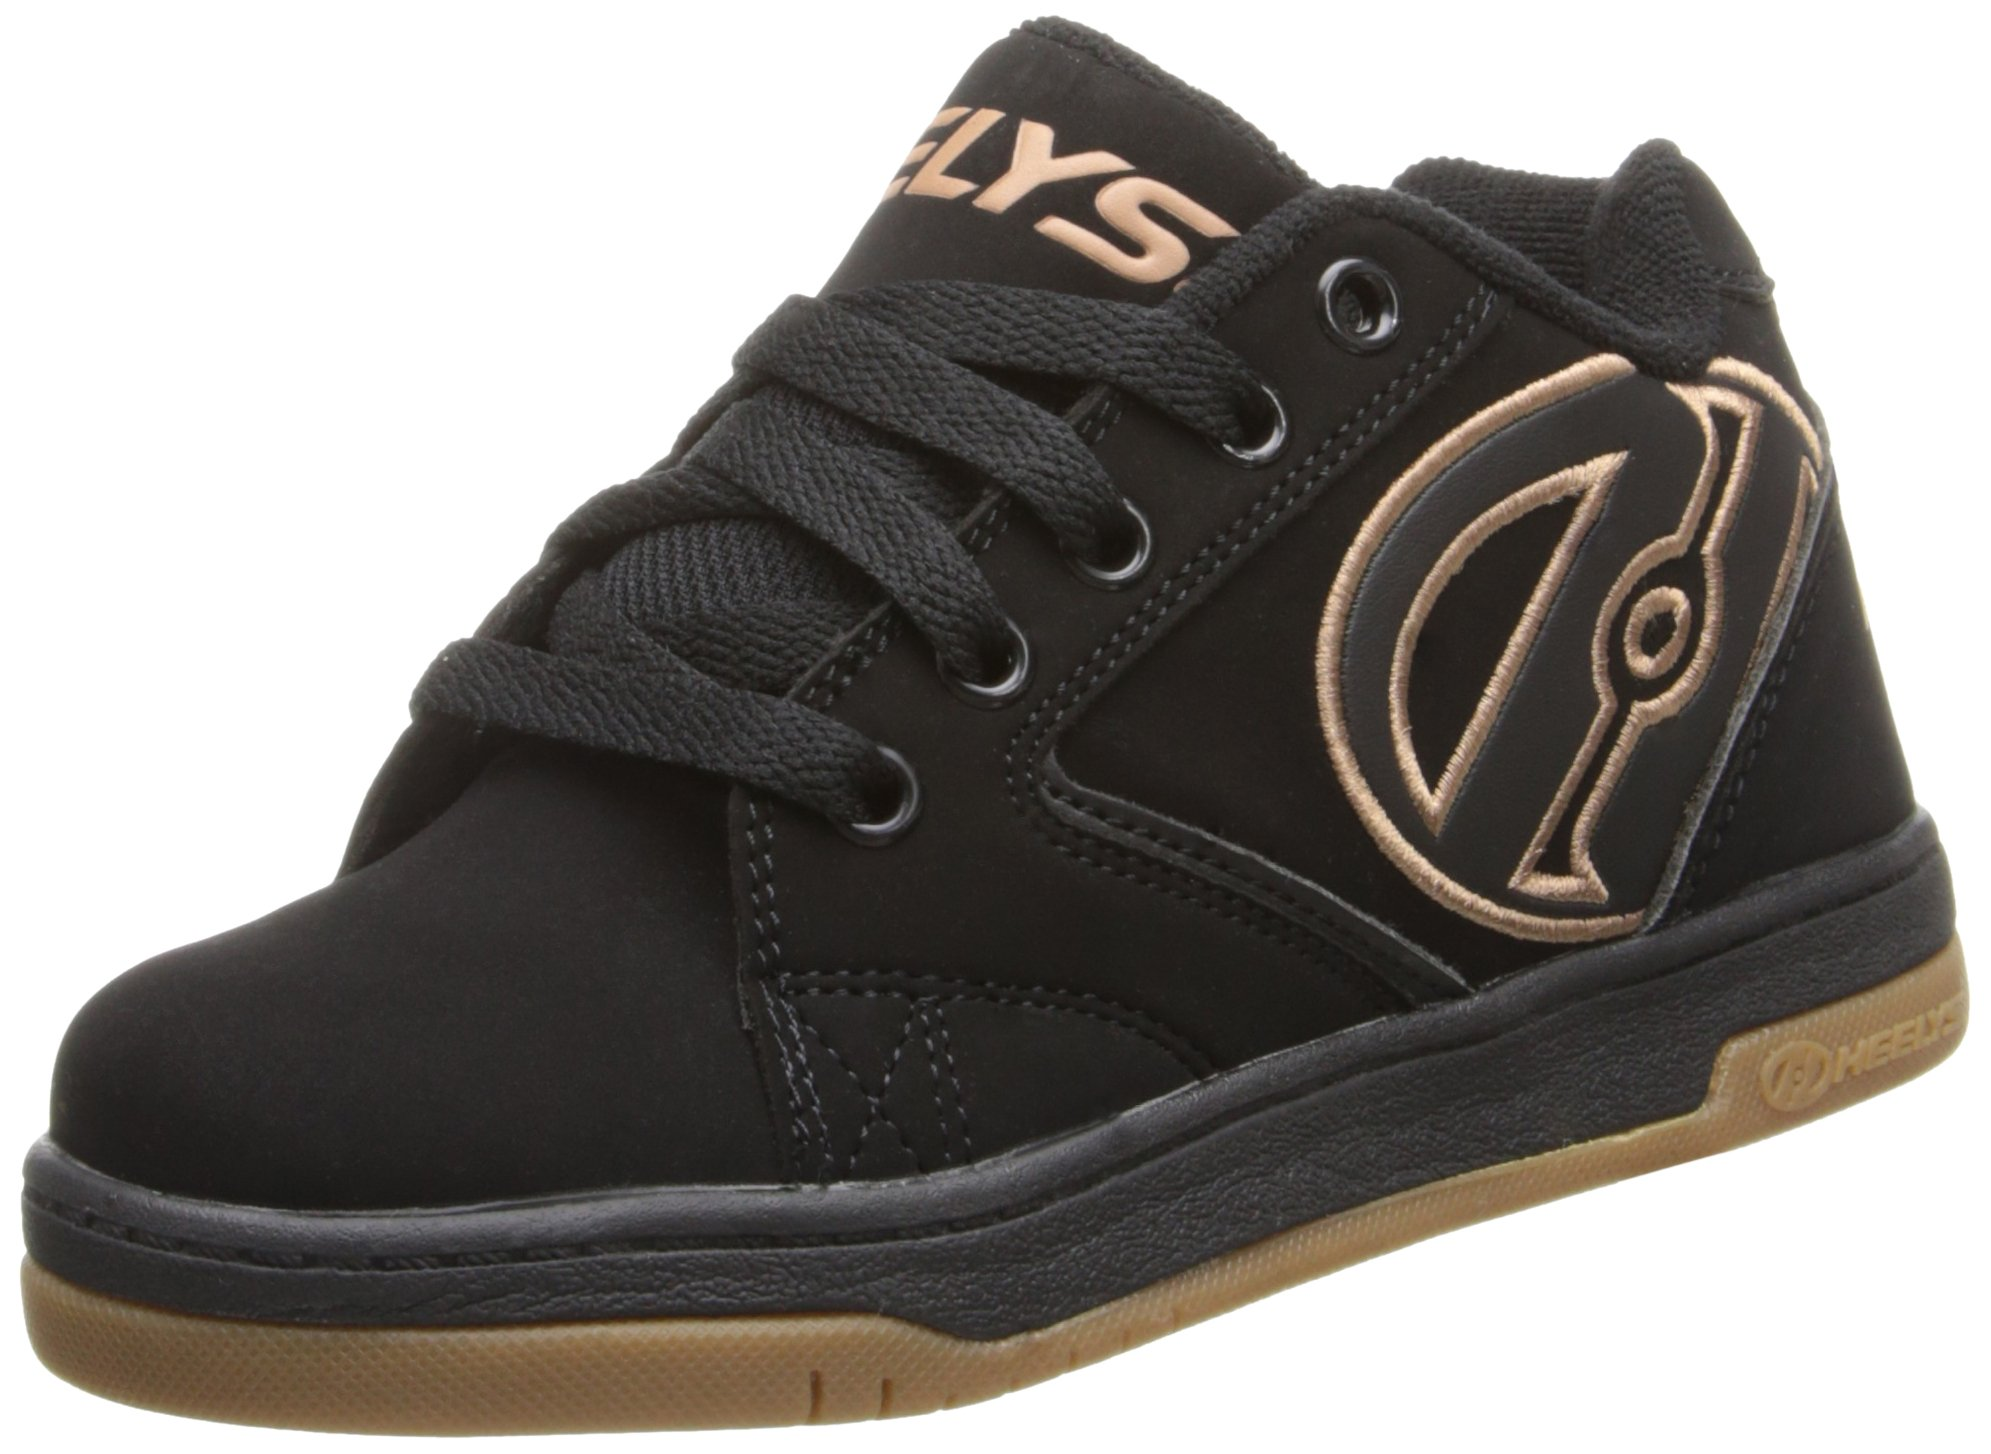 Heelys Propel-K Skate Shoe Black/Gum,3 M US Little Kid